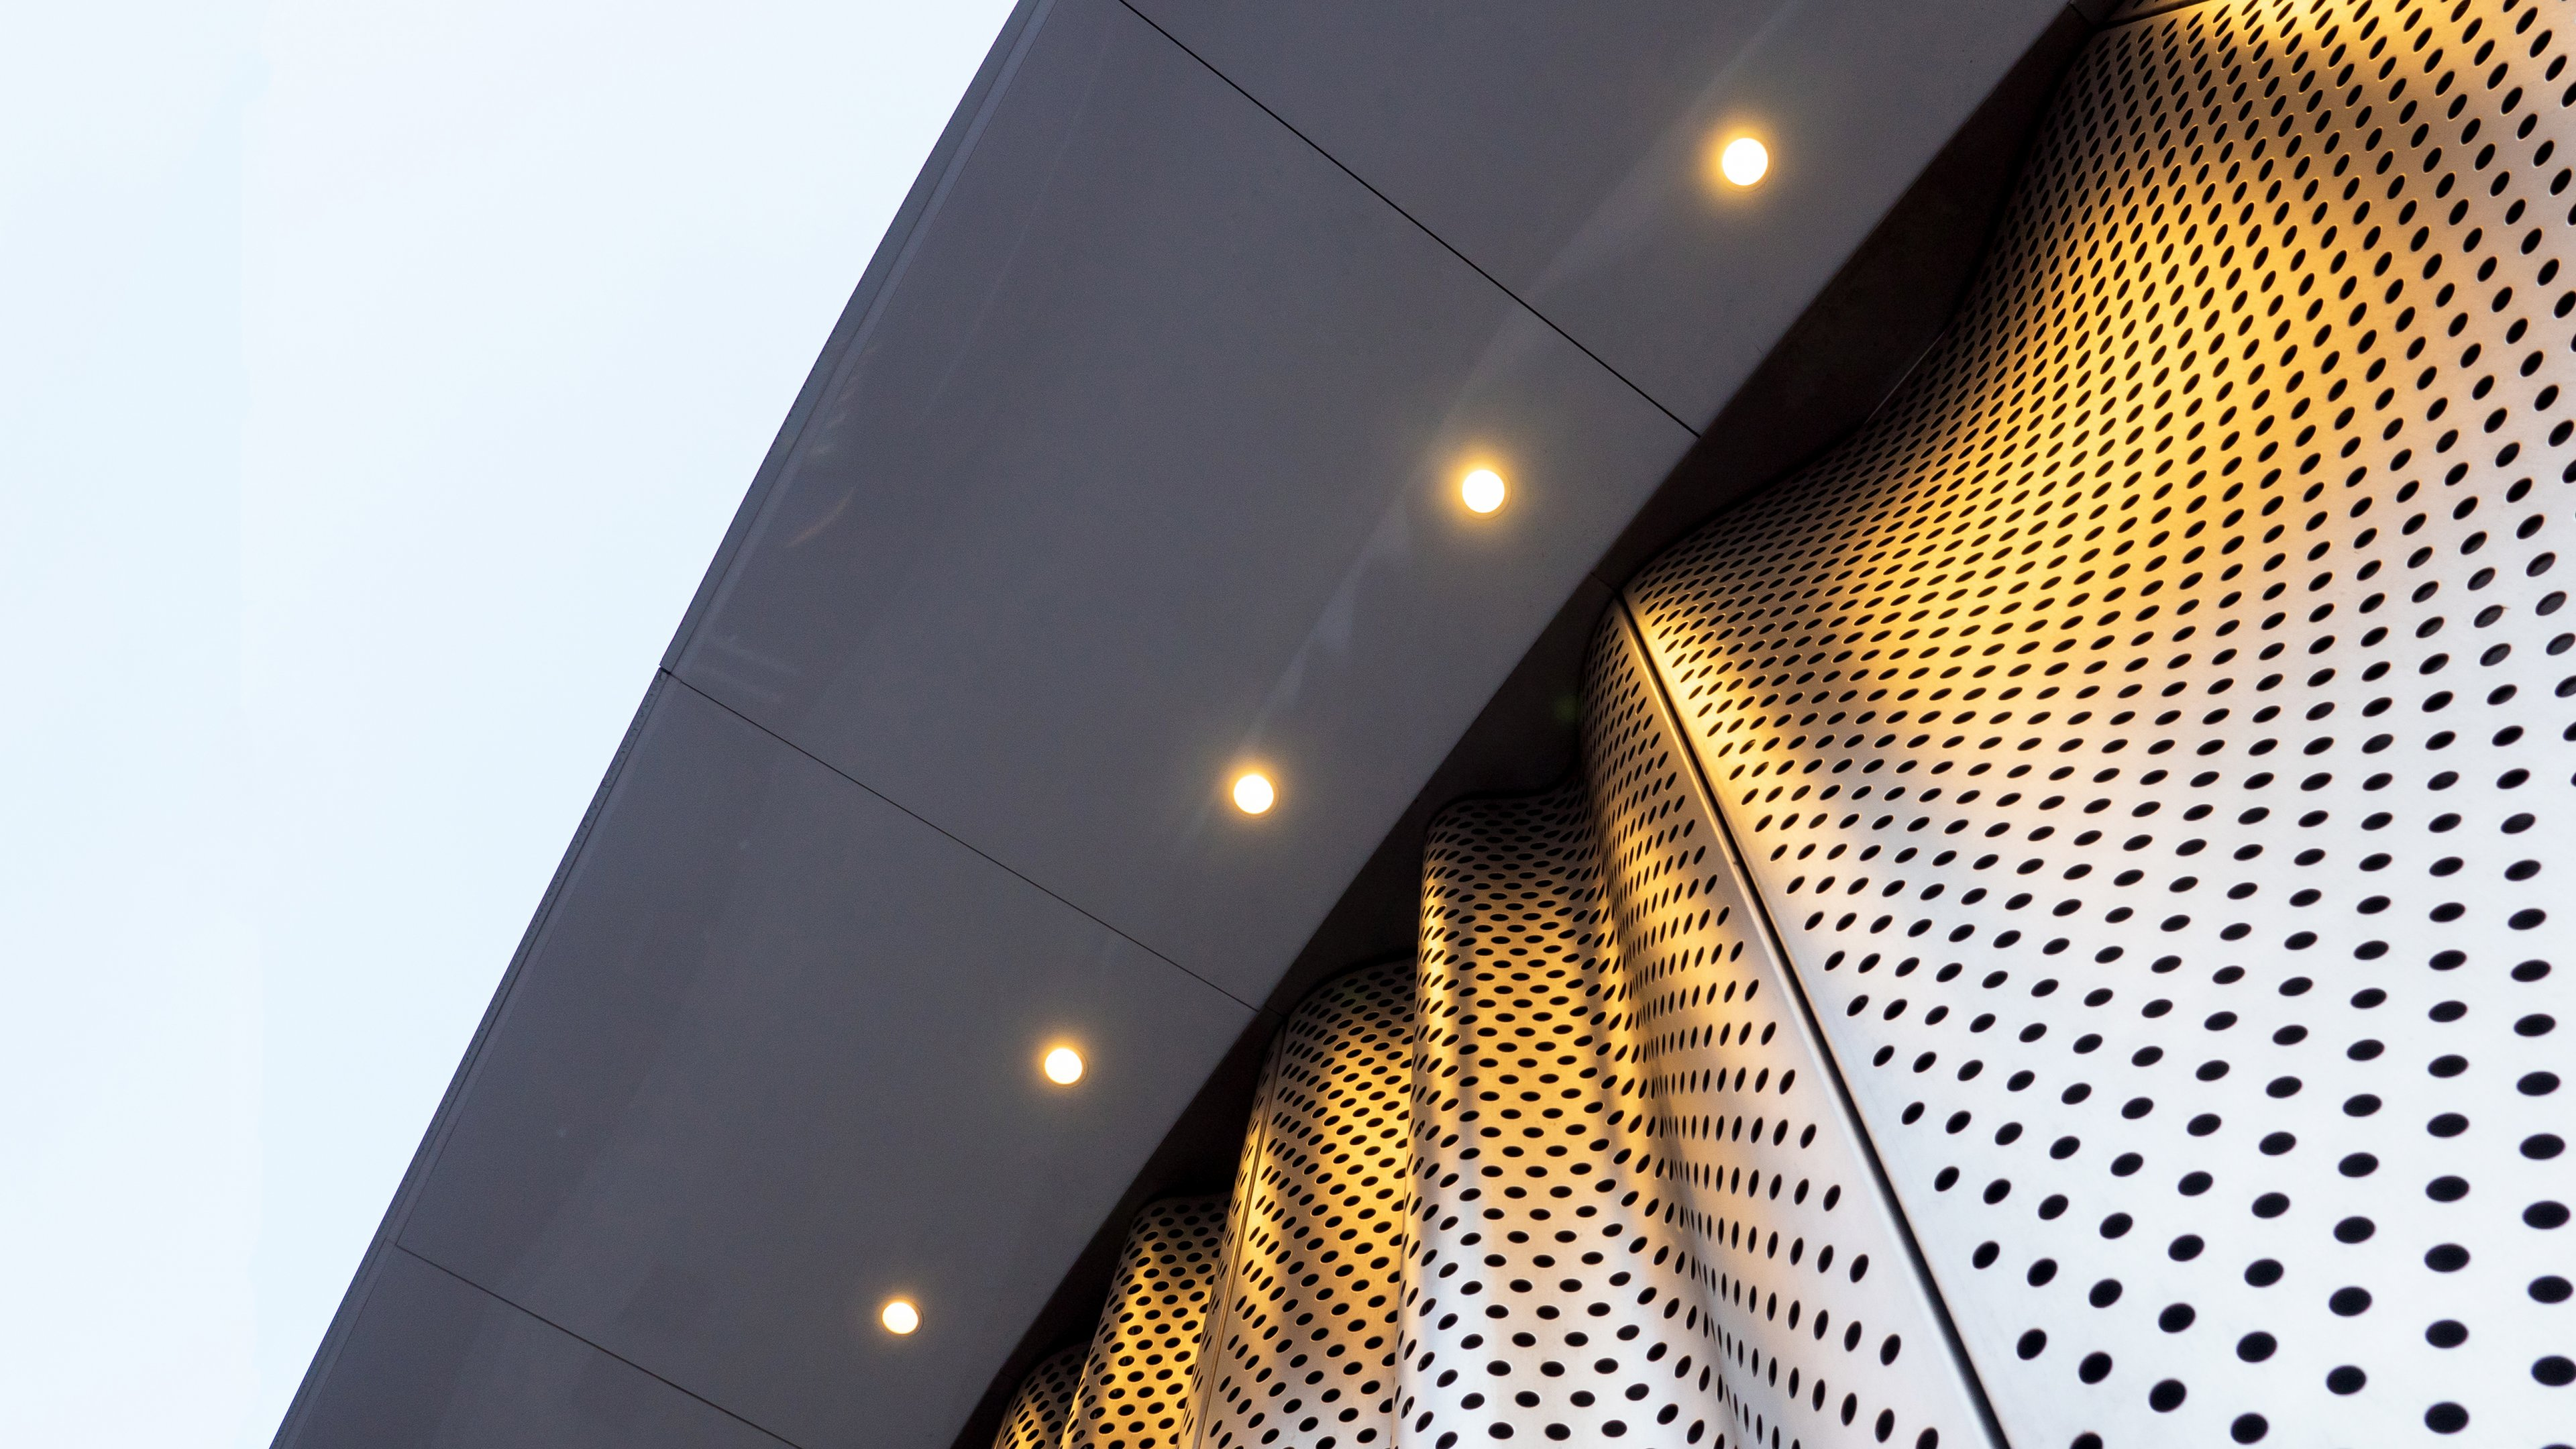 POHL perforated sheet metal facade